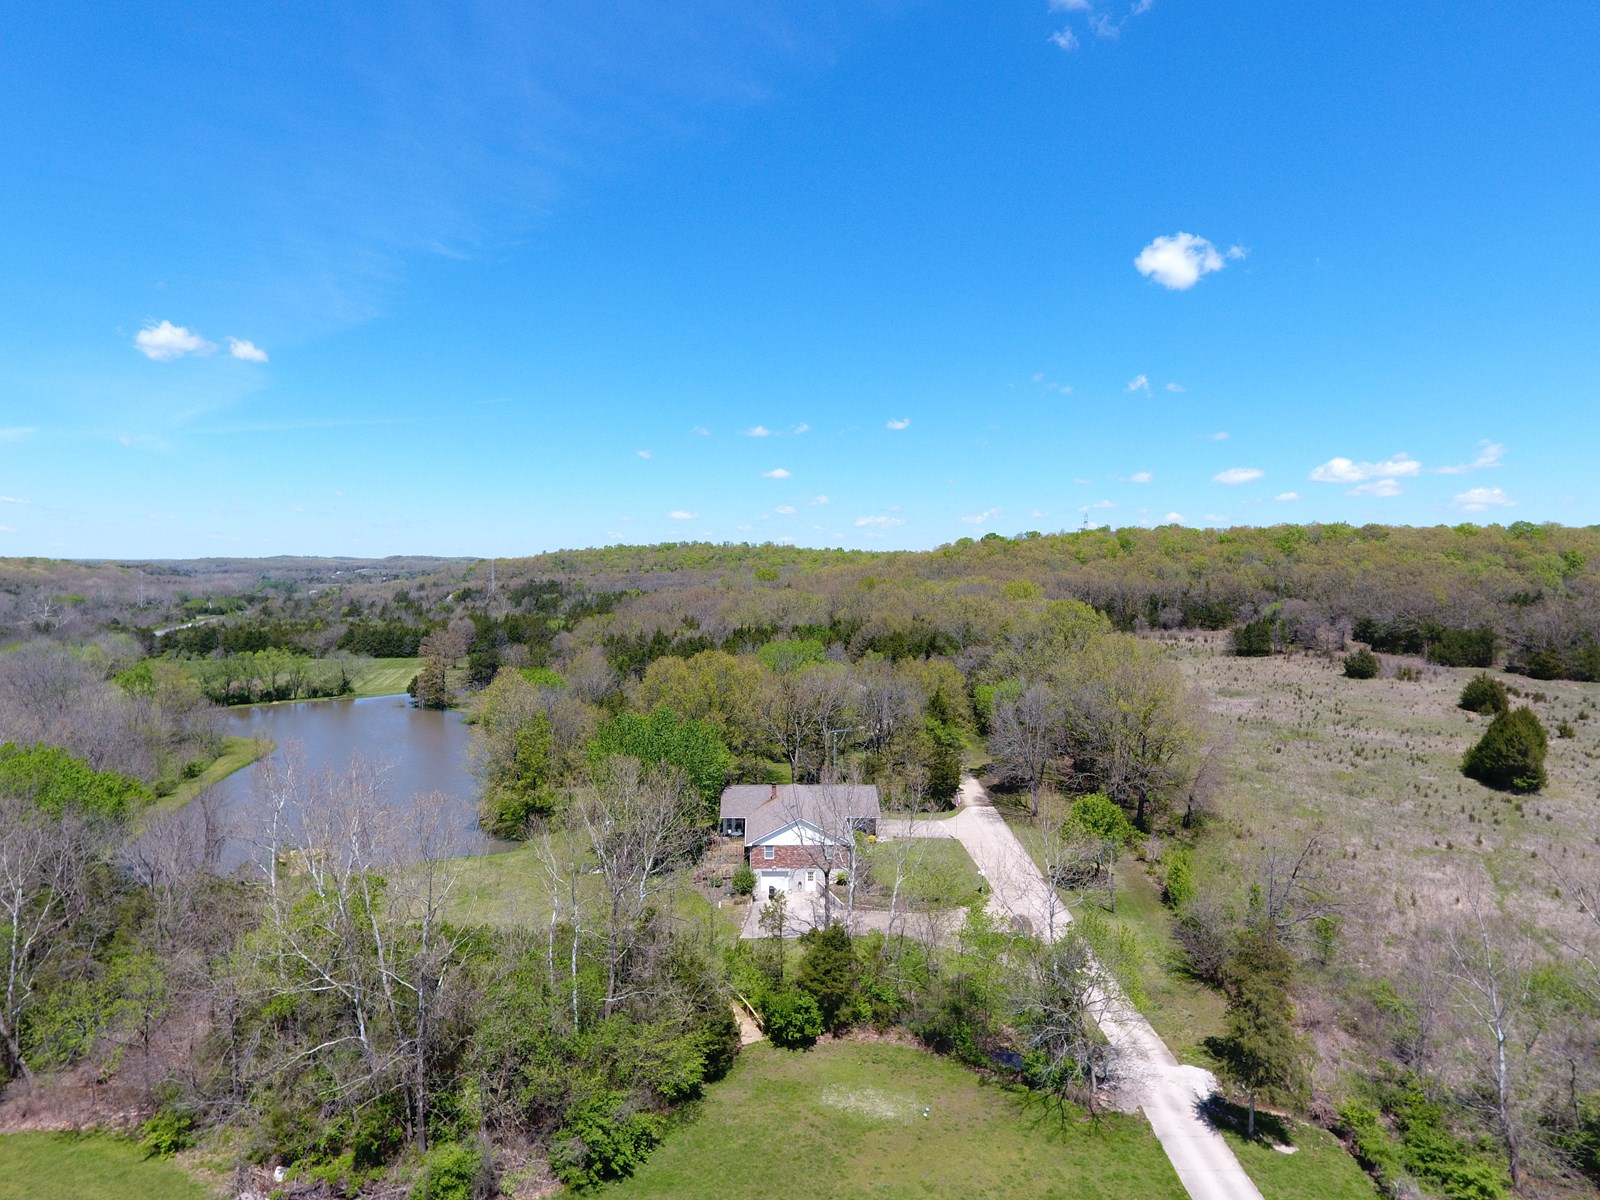 FOR SALE MINI FARM/COUNTRY HOME WITH LAKE IN PHELPS CTY MO